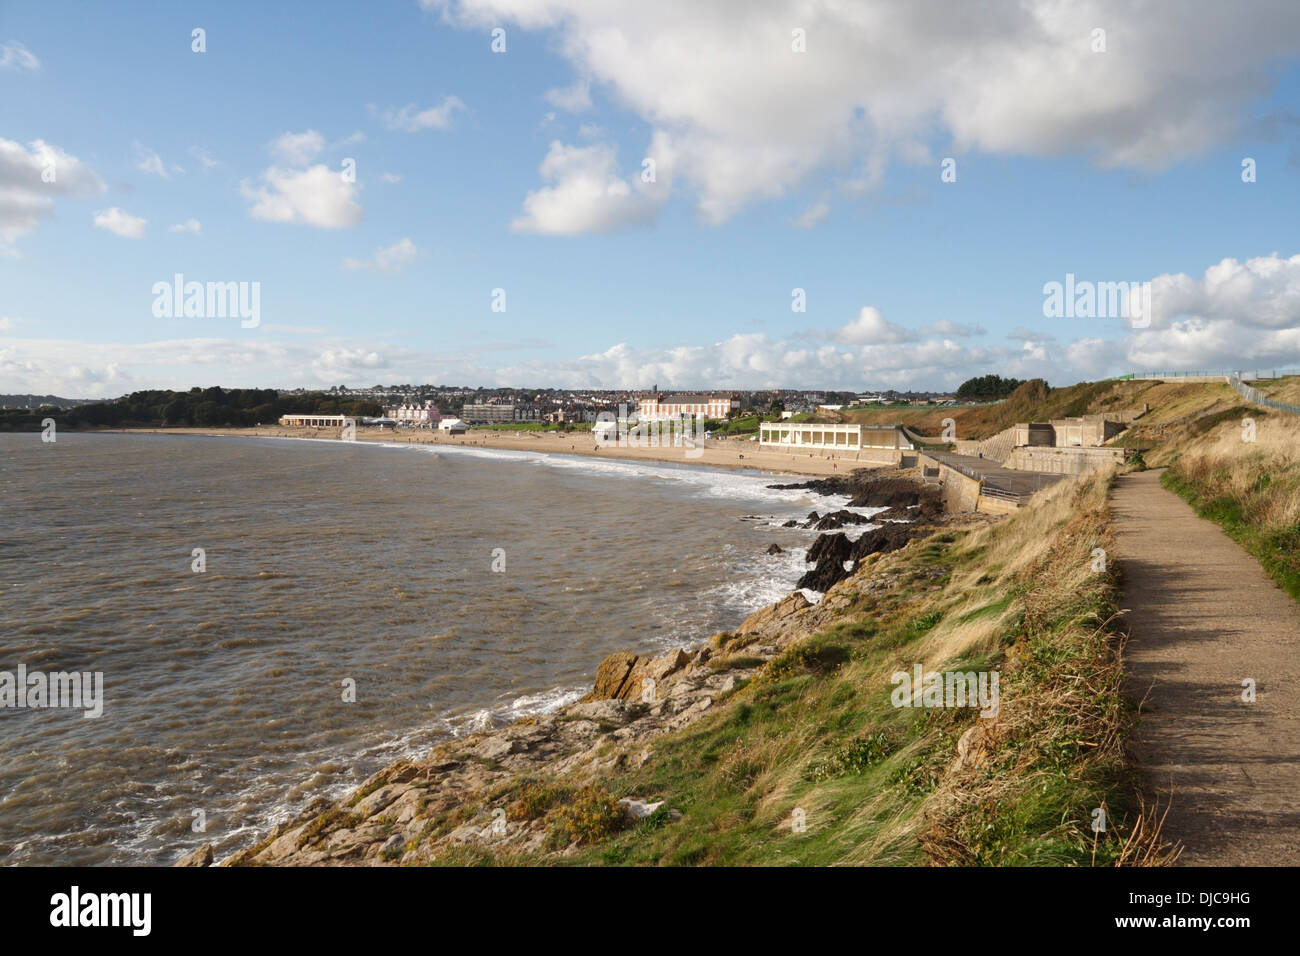 Whitmore Bay and Beach in Barry Island, Wales Stock Photo